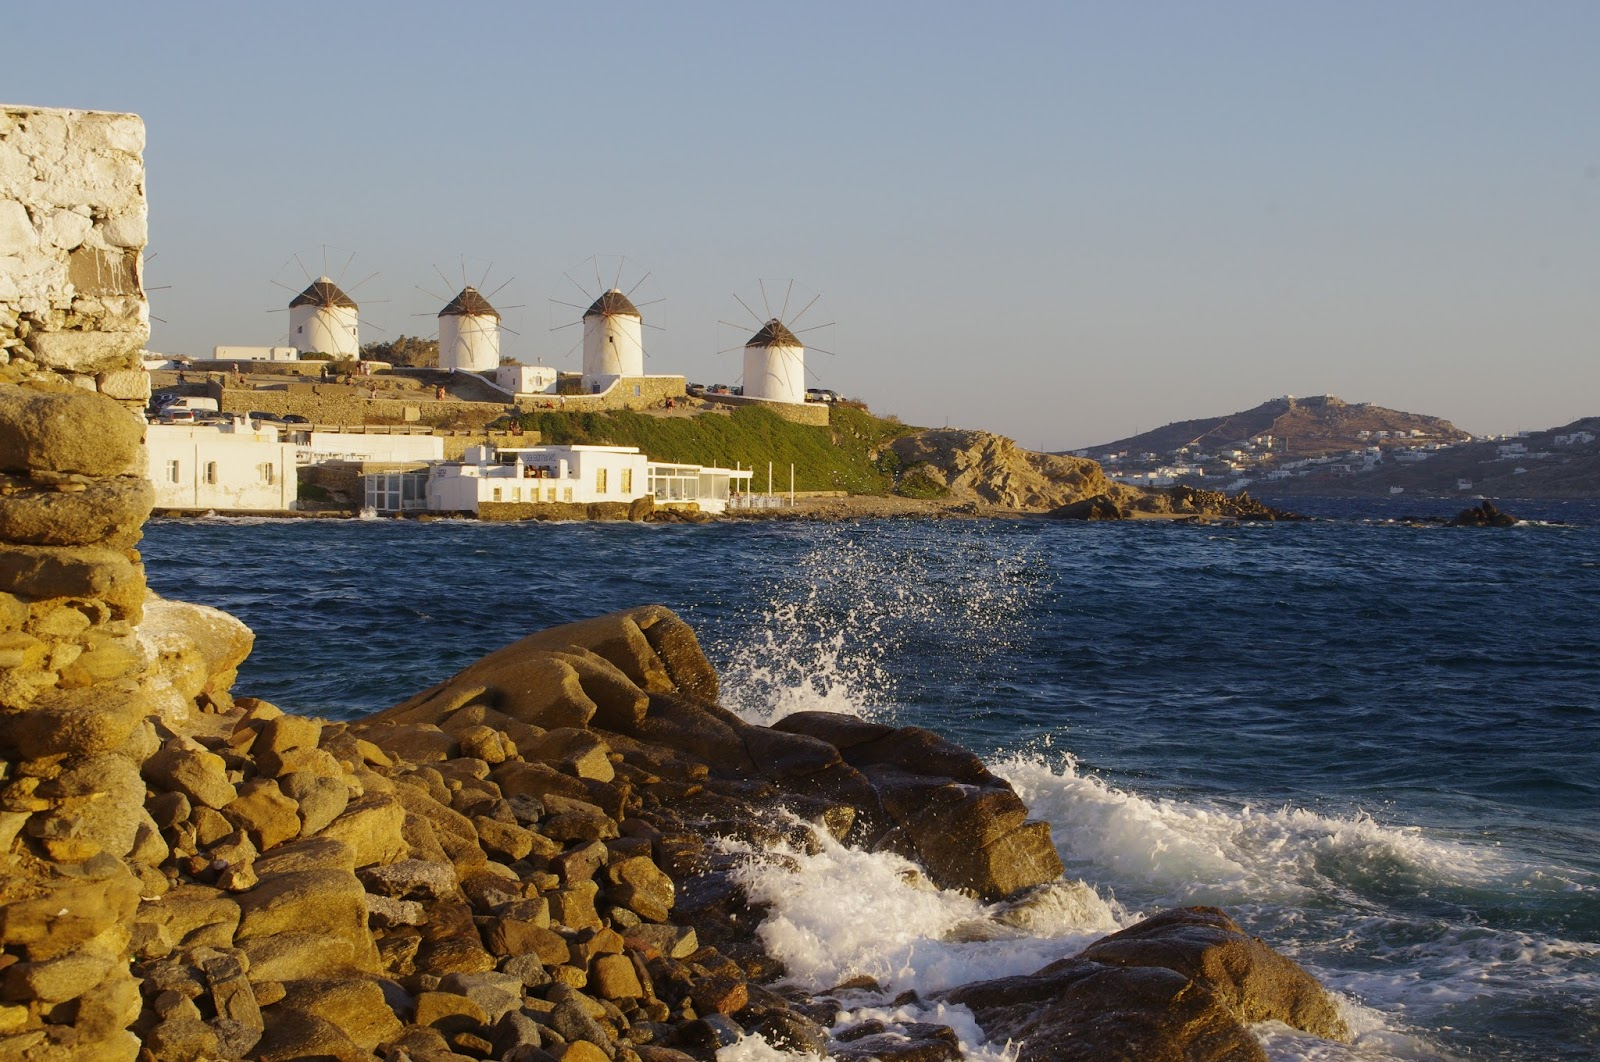 Mykonos Iconic Windmills from viewpoint